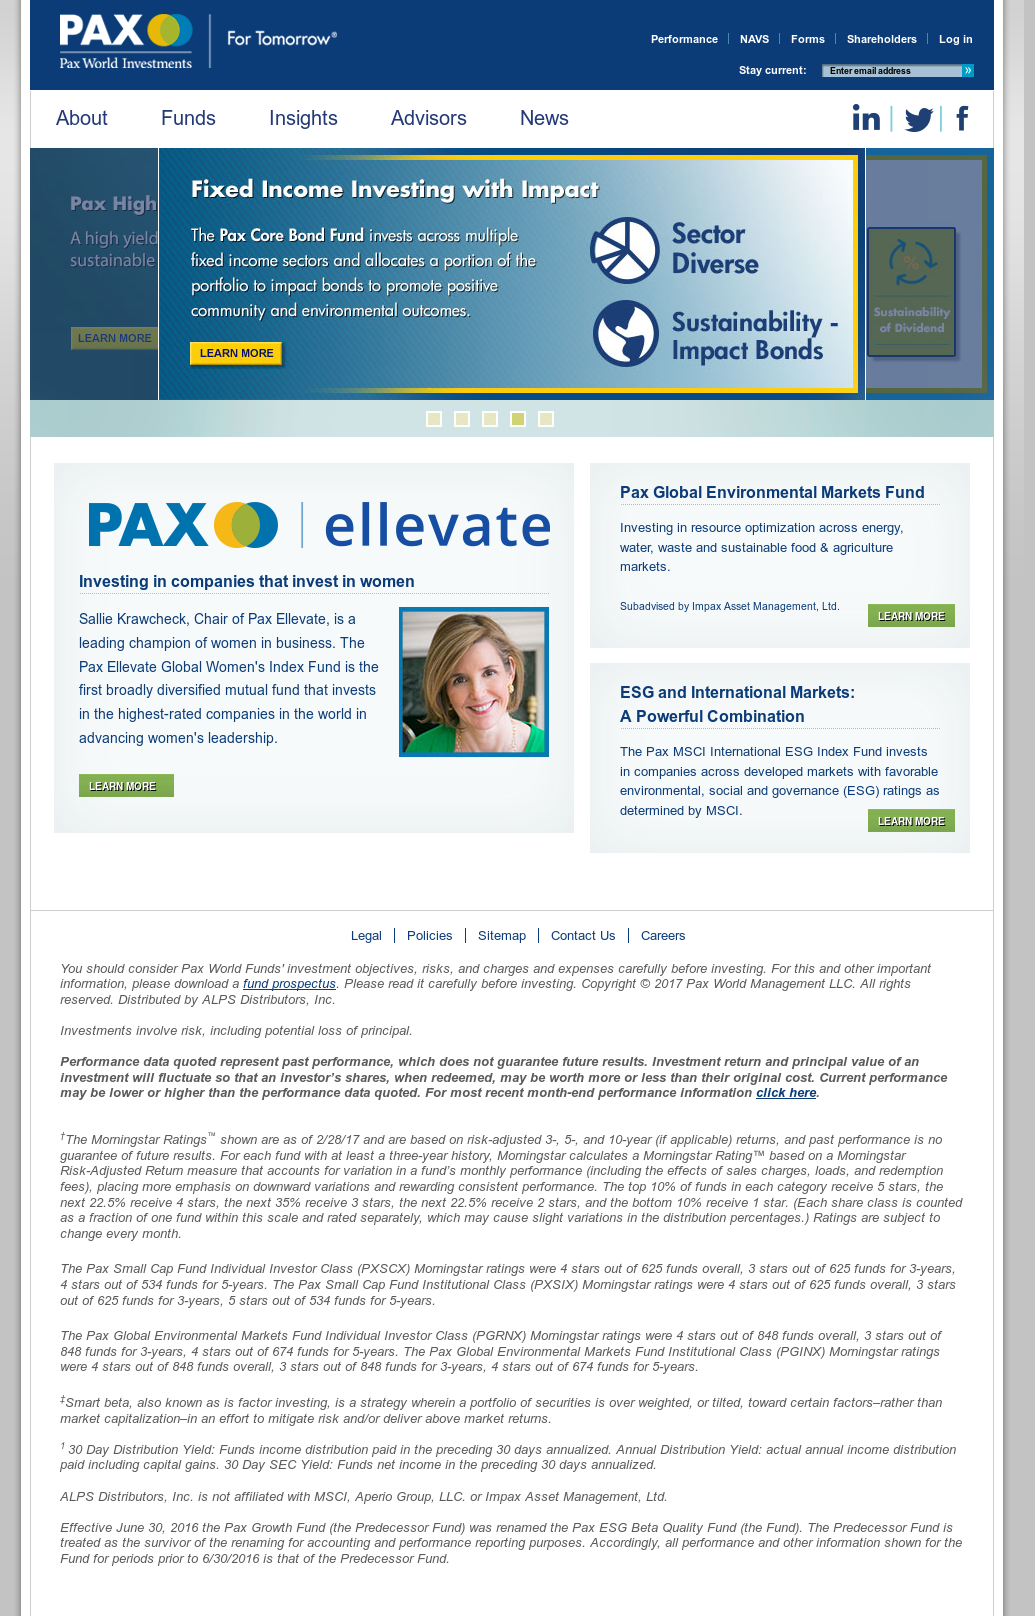 Pax World Investments Competitors, Revenue and Employees